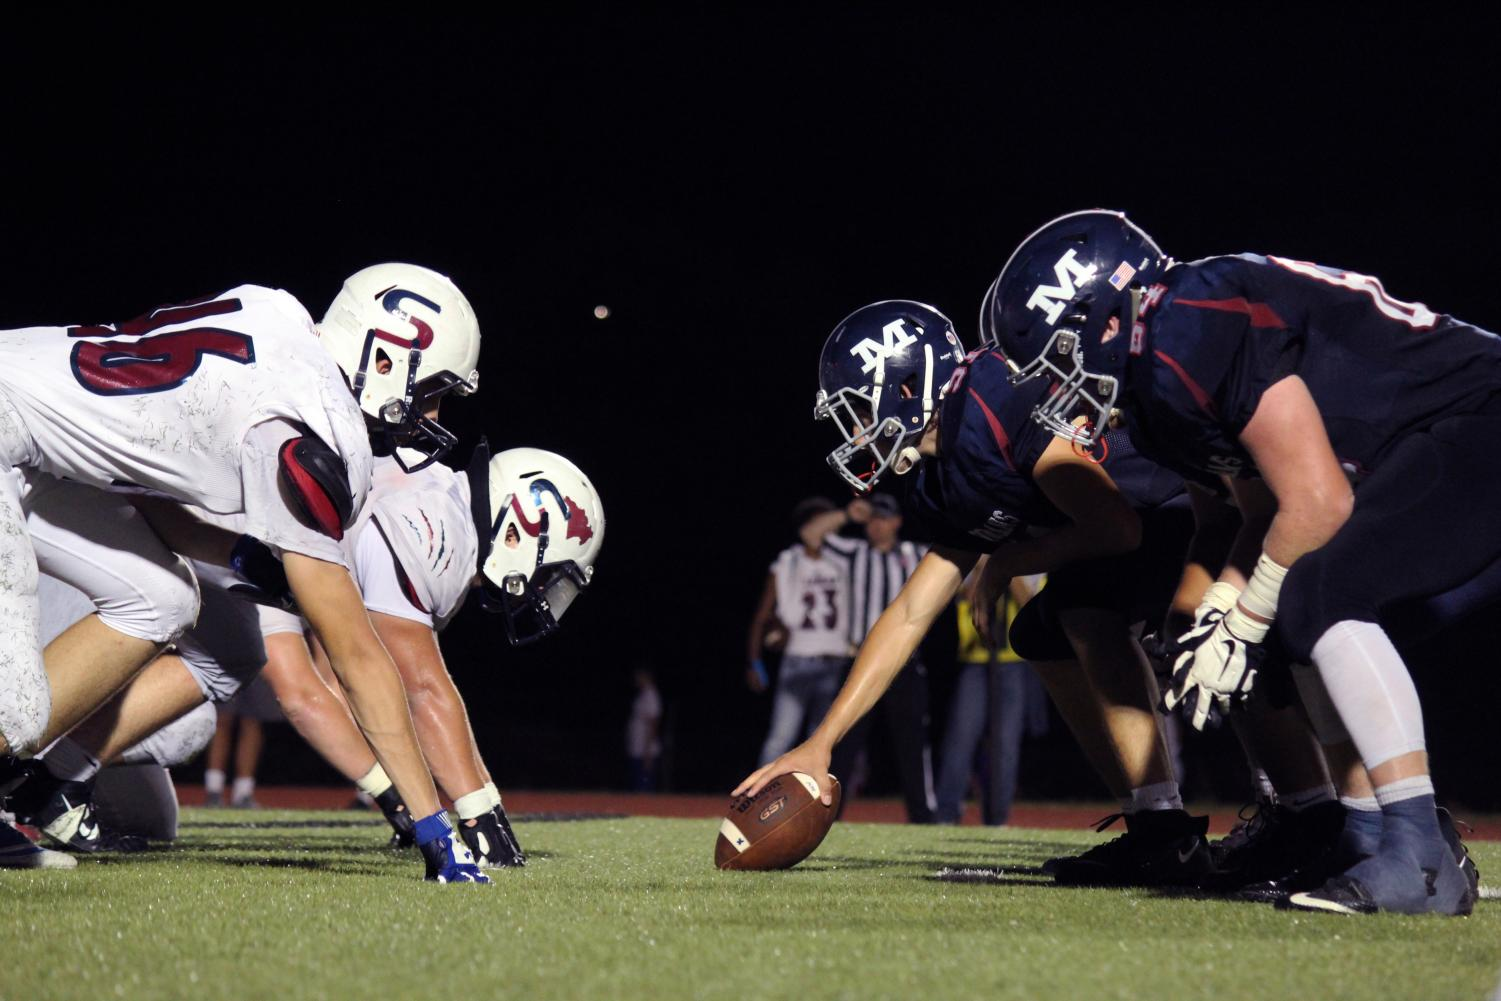 The+Varsity+football+players+line+up+to+hike+the+ball+to+the+quarterback.+The+boys+won+56-24+on+Sept.+20%2C+the+annual+Homecoming+game.+